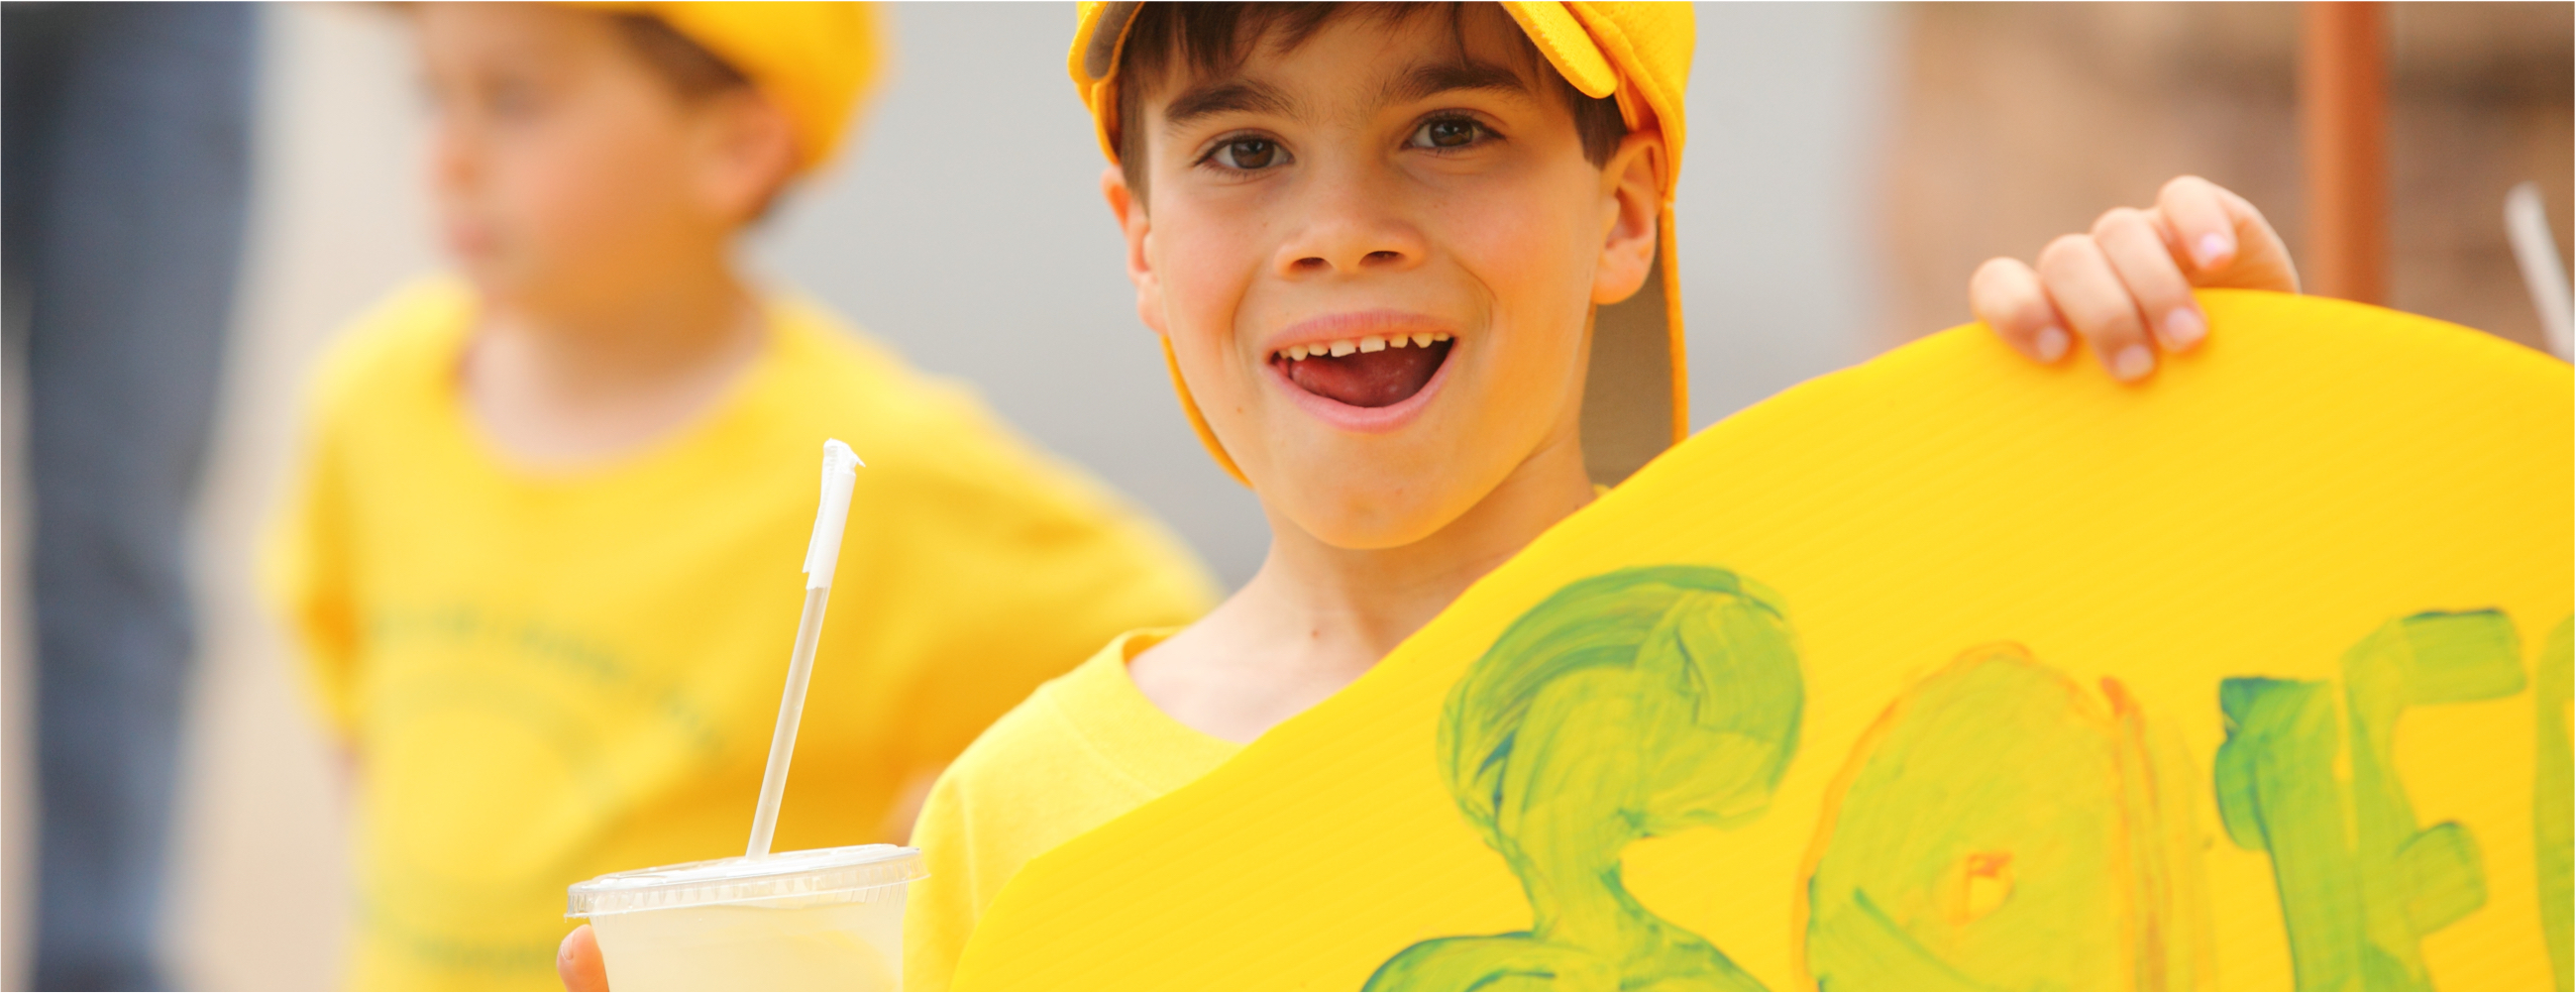 LEMONADE DAY STORIES, TIPS, AND MORE